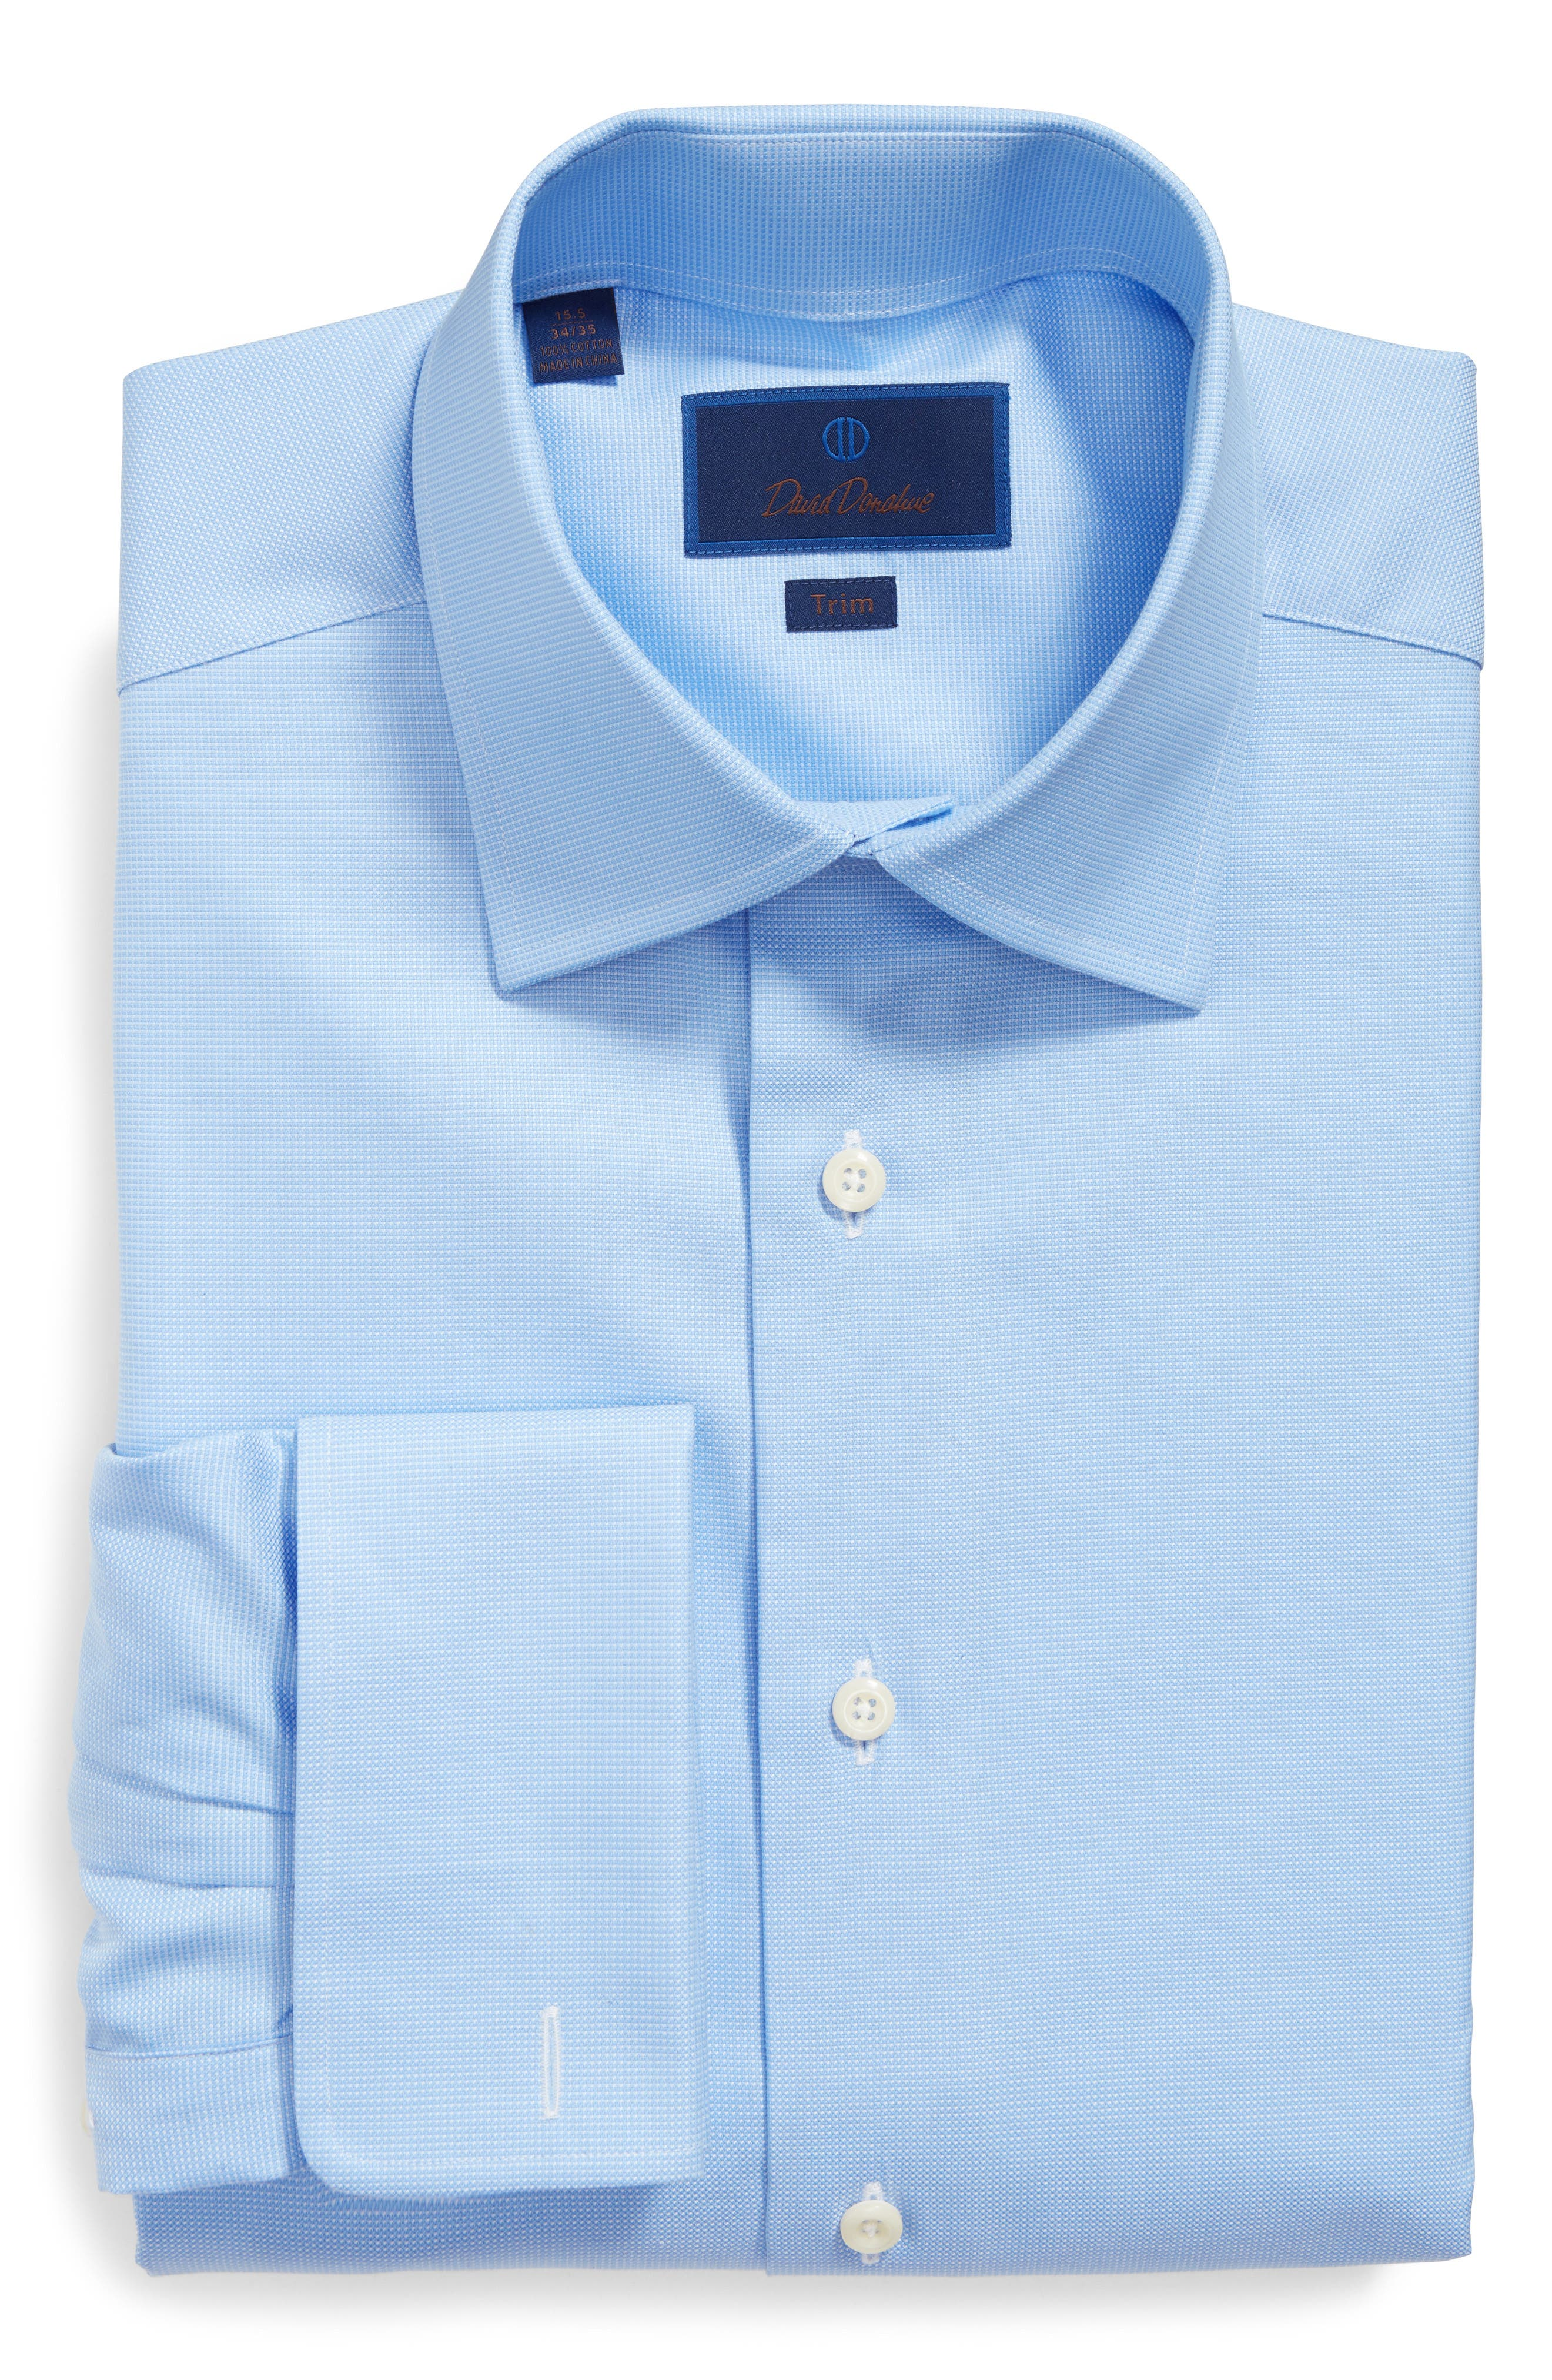 DAVID DONAHUE Trim Fit Texture French Cuff Dress Shirt, Main, color, 423